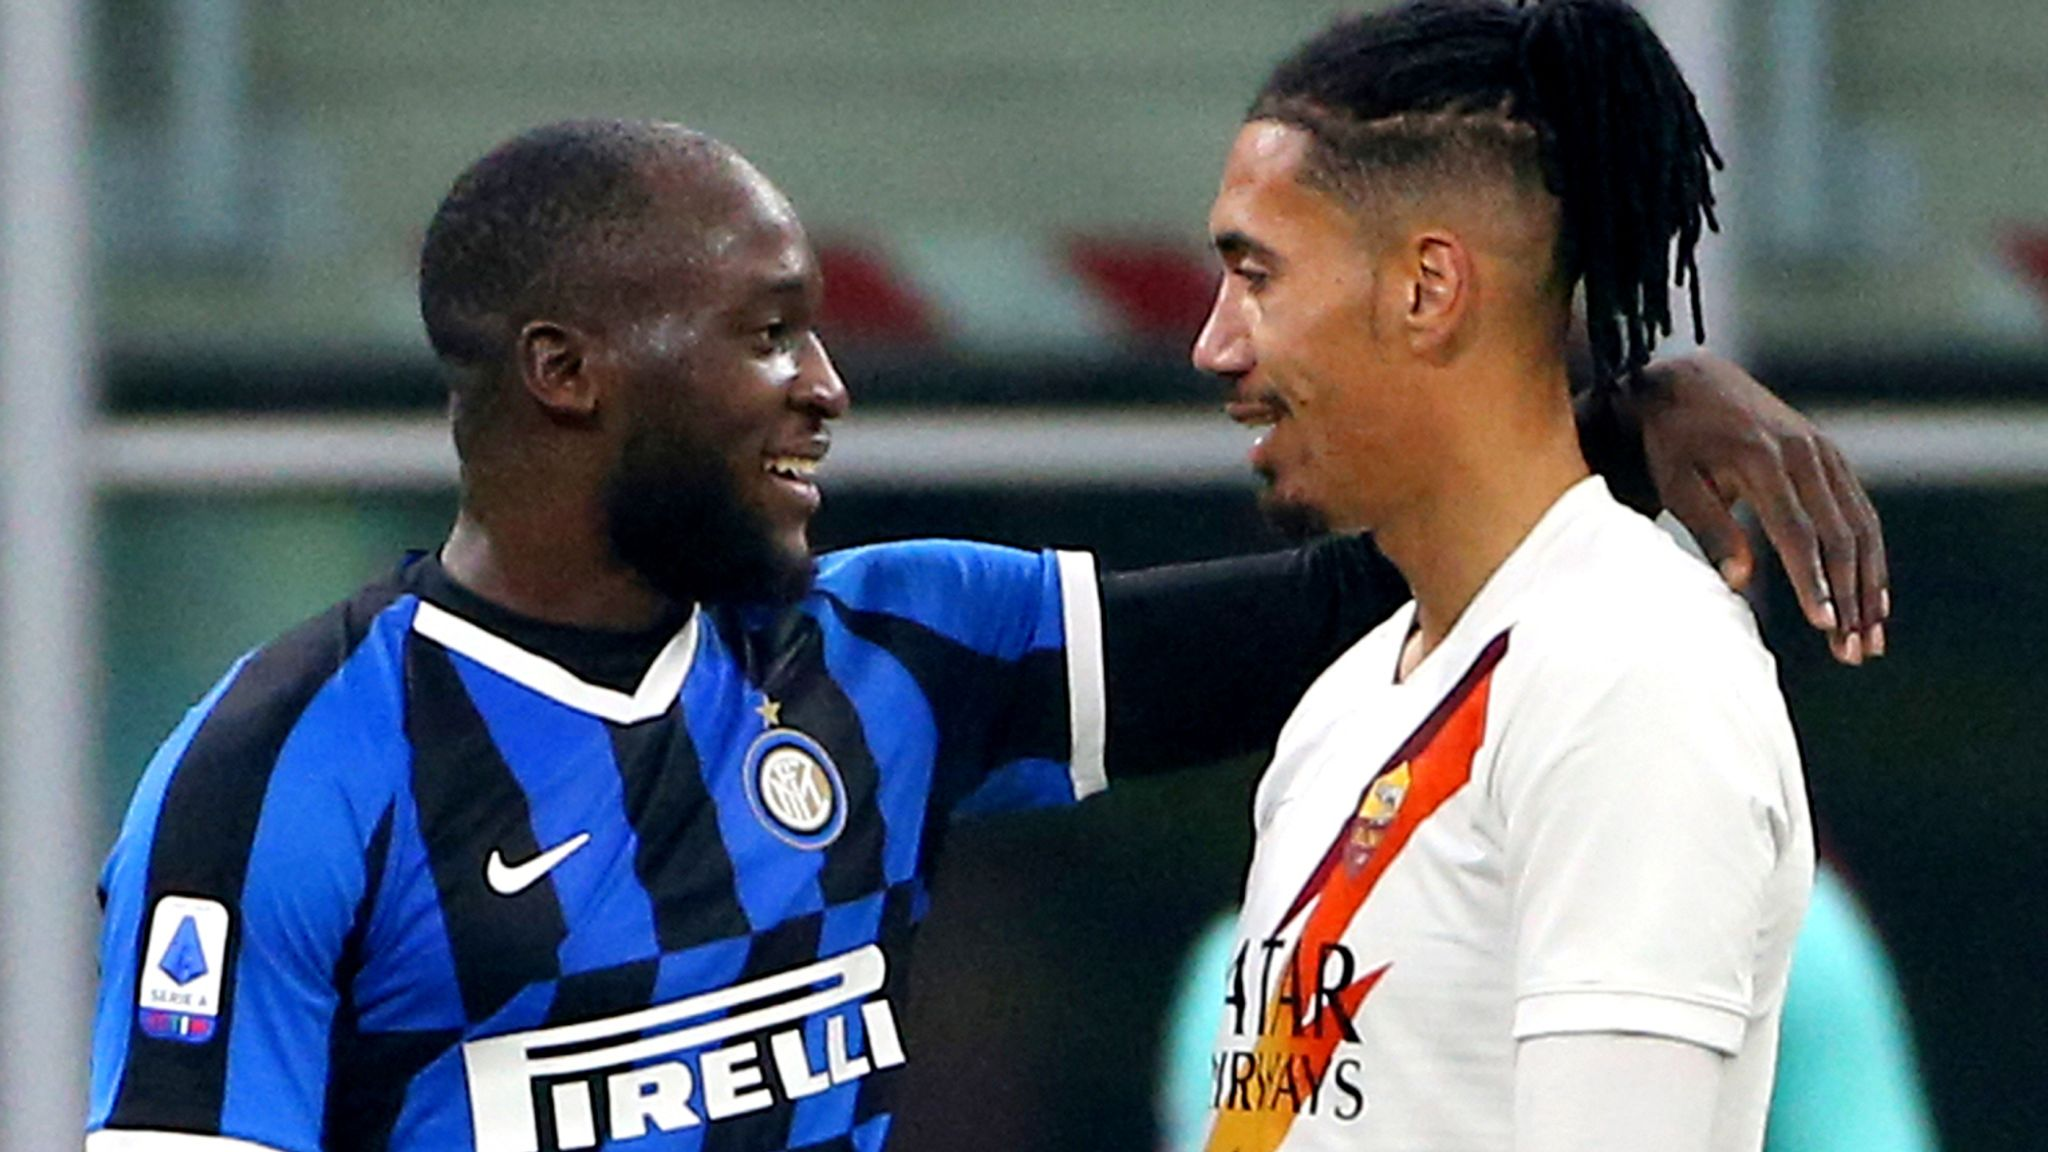 Romelu Lukaku's Inter, Chris Smalling's Roma in goalless draw after racism storm - European round-up